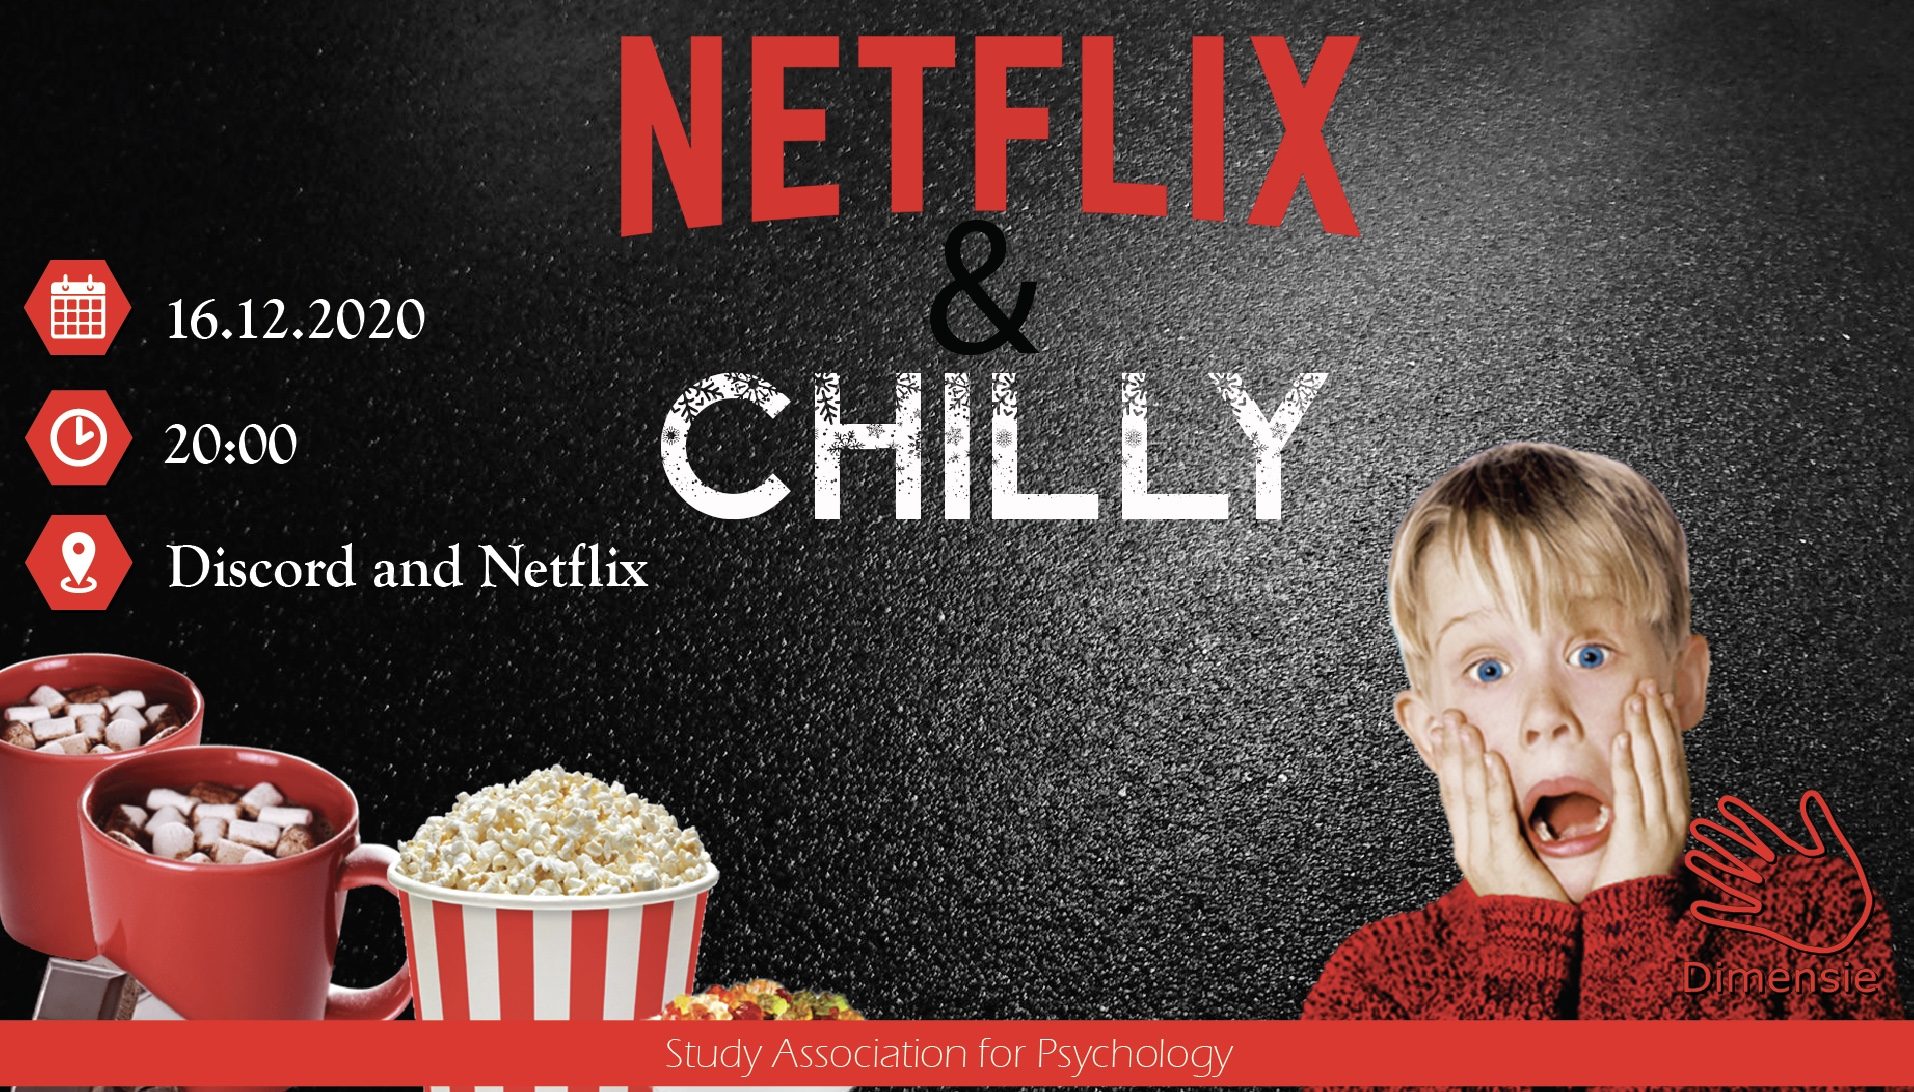 Netflix and Chilly - Netflix Christmas Party